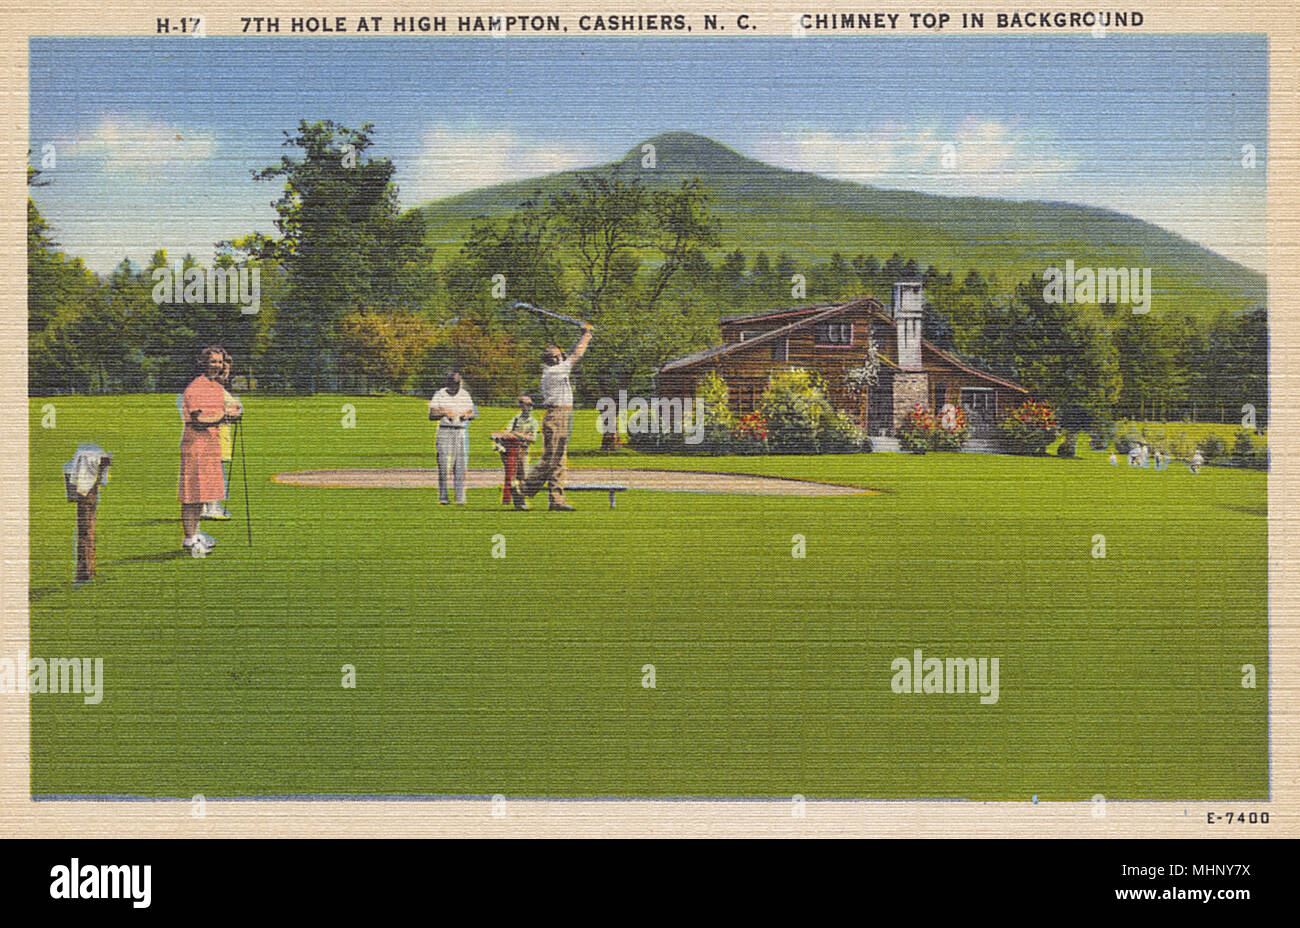 Golfing at the 7th hole, High Hampton, Cashiers, North Carolina, USA, with the Chimney Top Mountain in the distance.      Date: 1940s - Stock Image